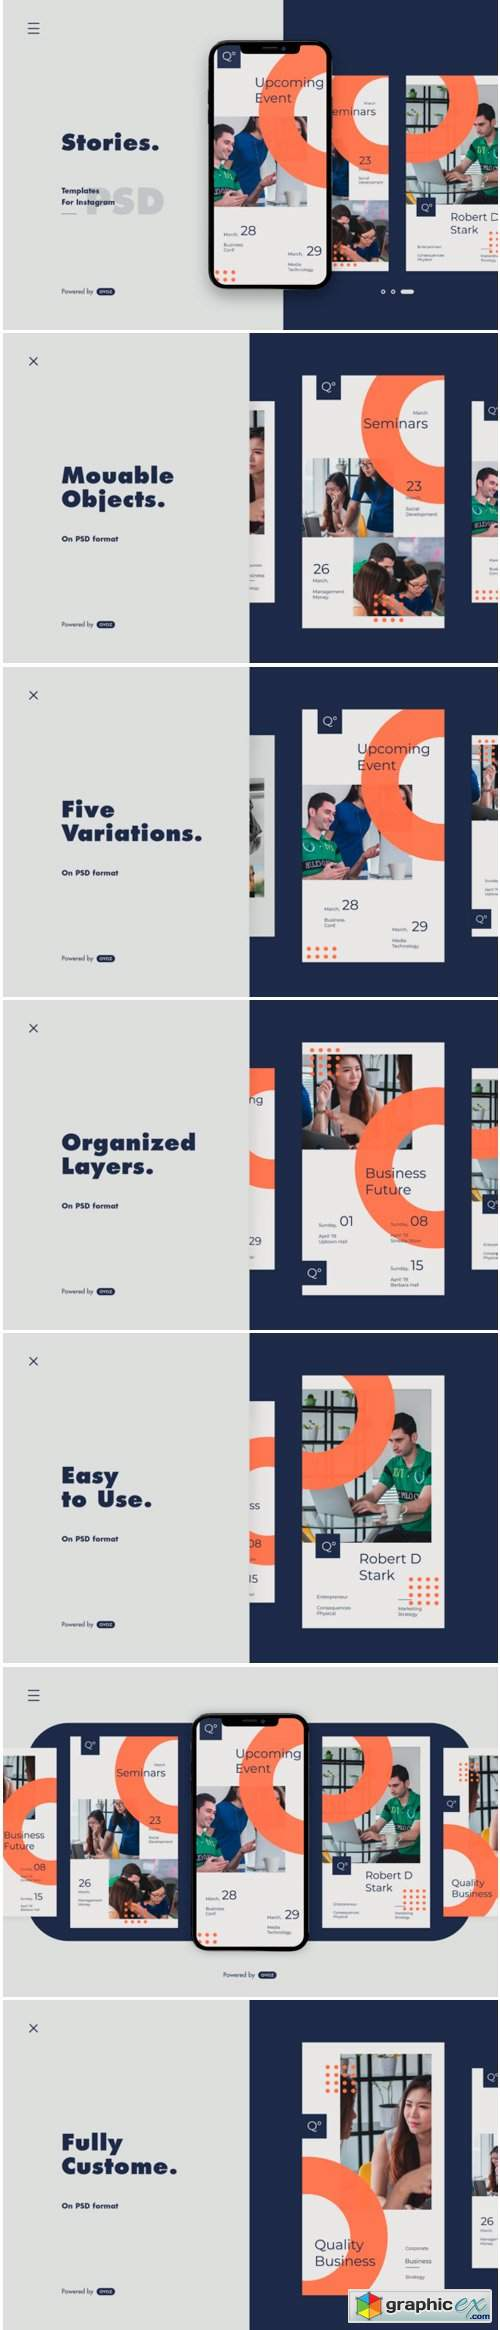 Instagram Story Template 1705538